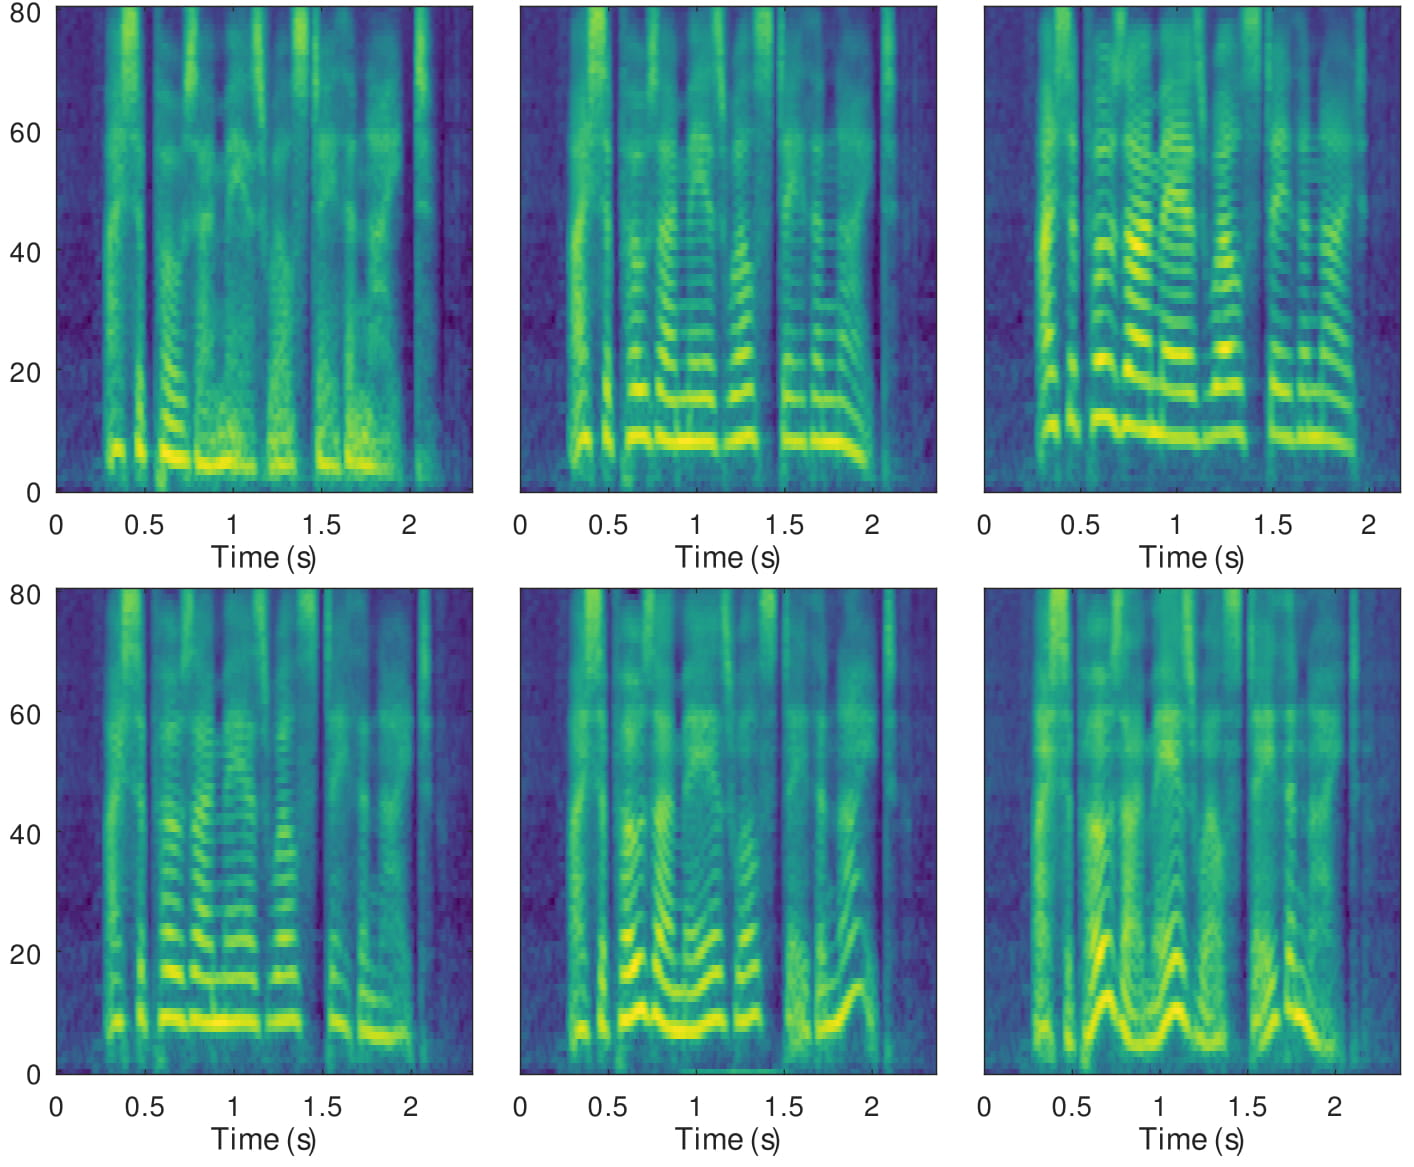 Spectrograms generated to demonstrate disentangled factors. The first row exhibits the control of pitch height only by adjusting latent dimension 6 to be -0.9, -0.1, 0.7. The second row shows that the local pitch variation is gradually magnified by increasing the value of dimension 10, which is 0.1, 0.5, 0.9, respectively.